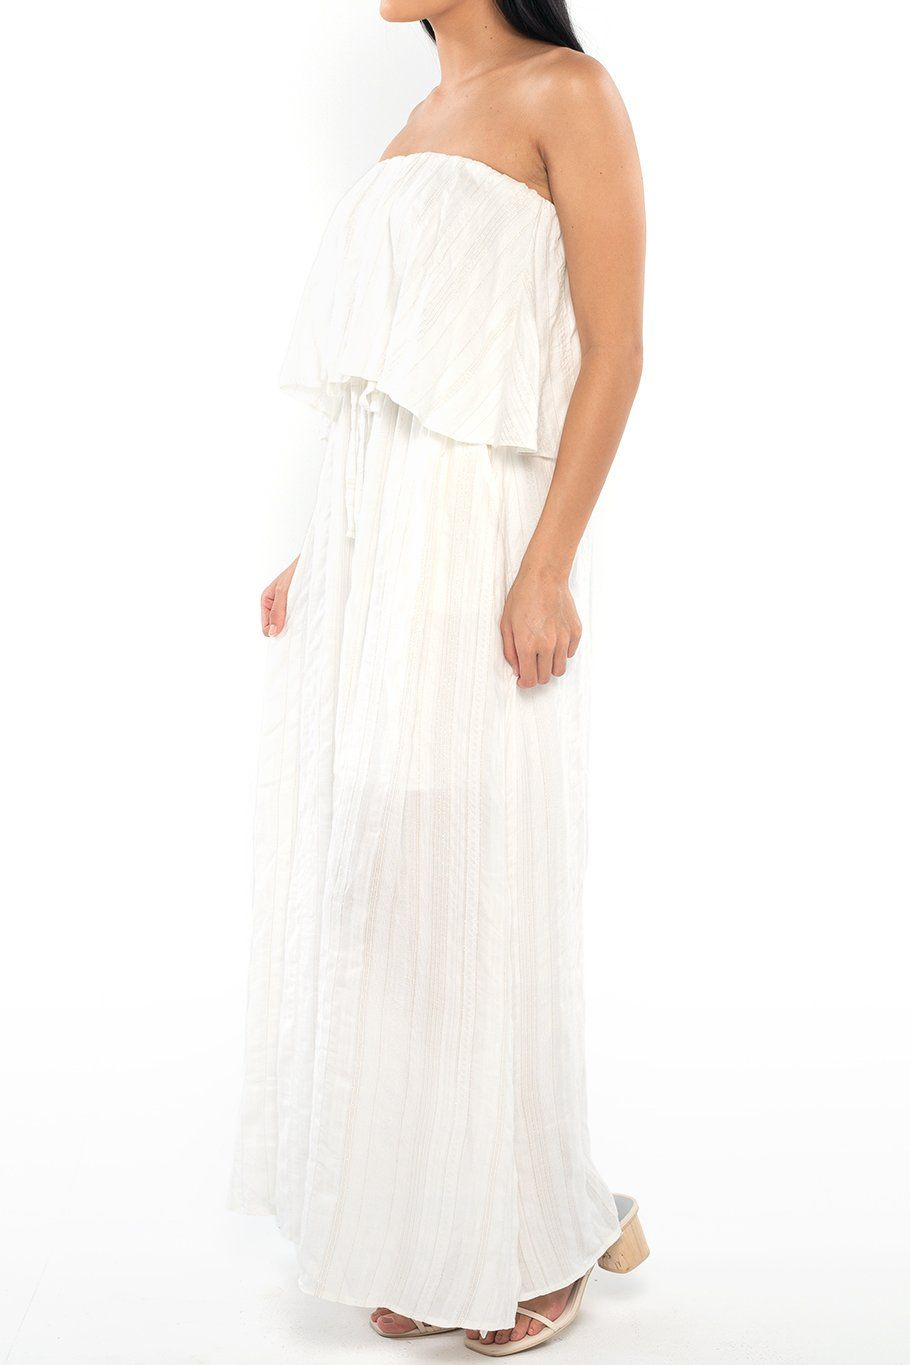 Santa Rosa Layered Maxi - Boho Lurex - Shore